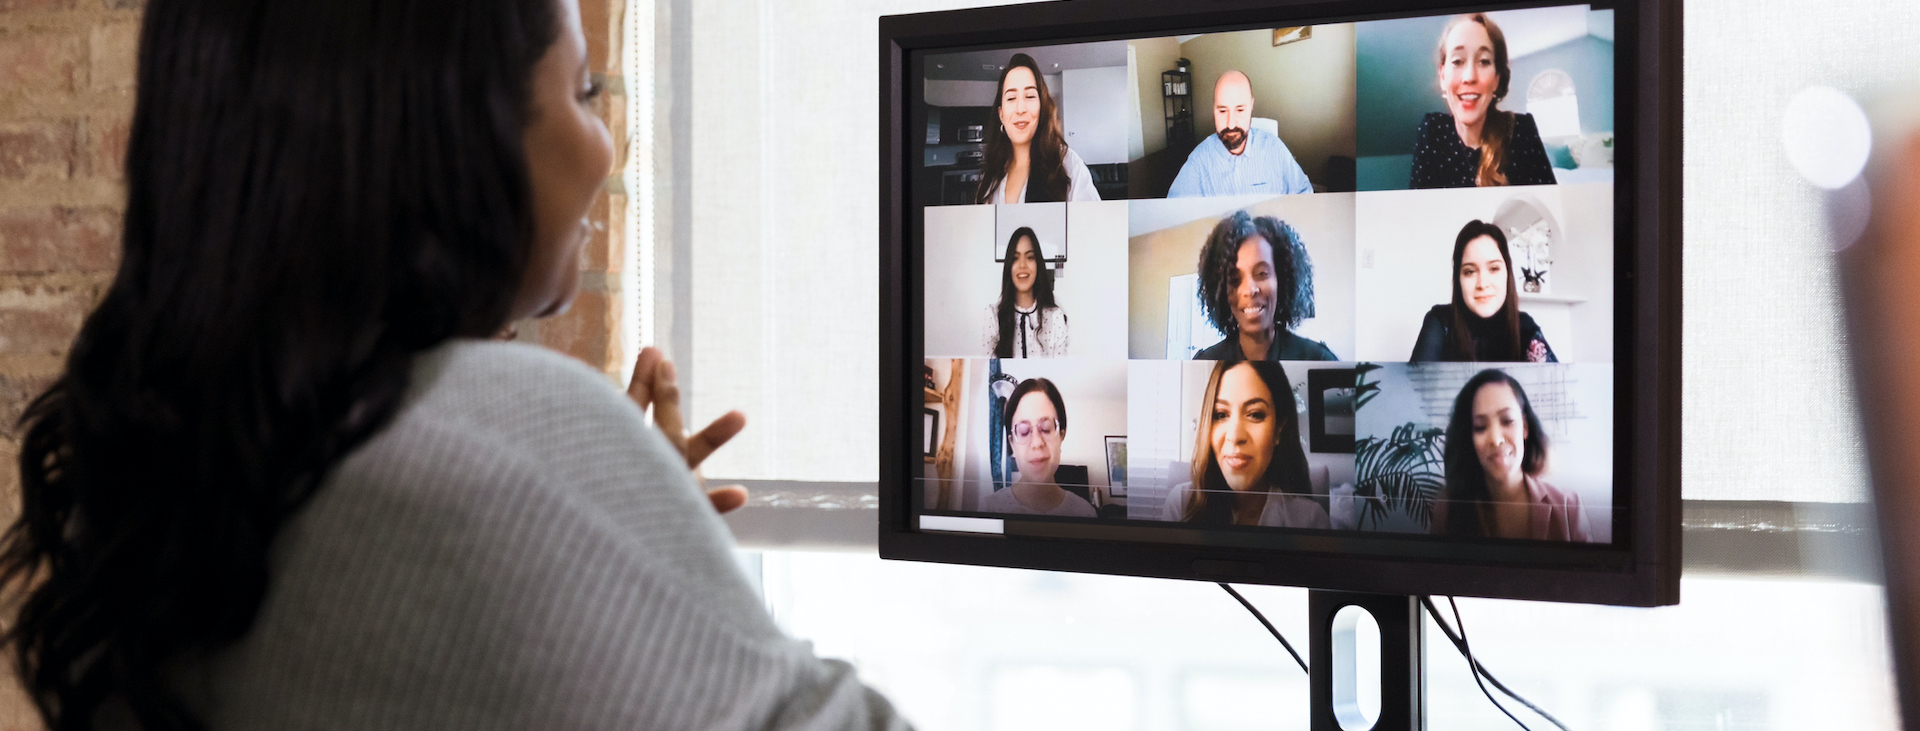 Woman joins group video call